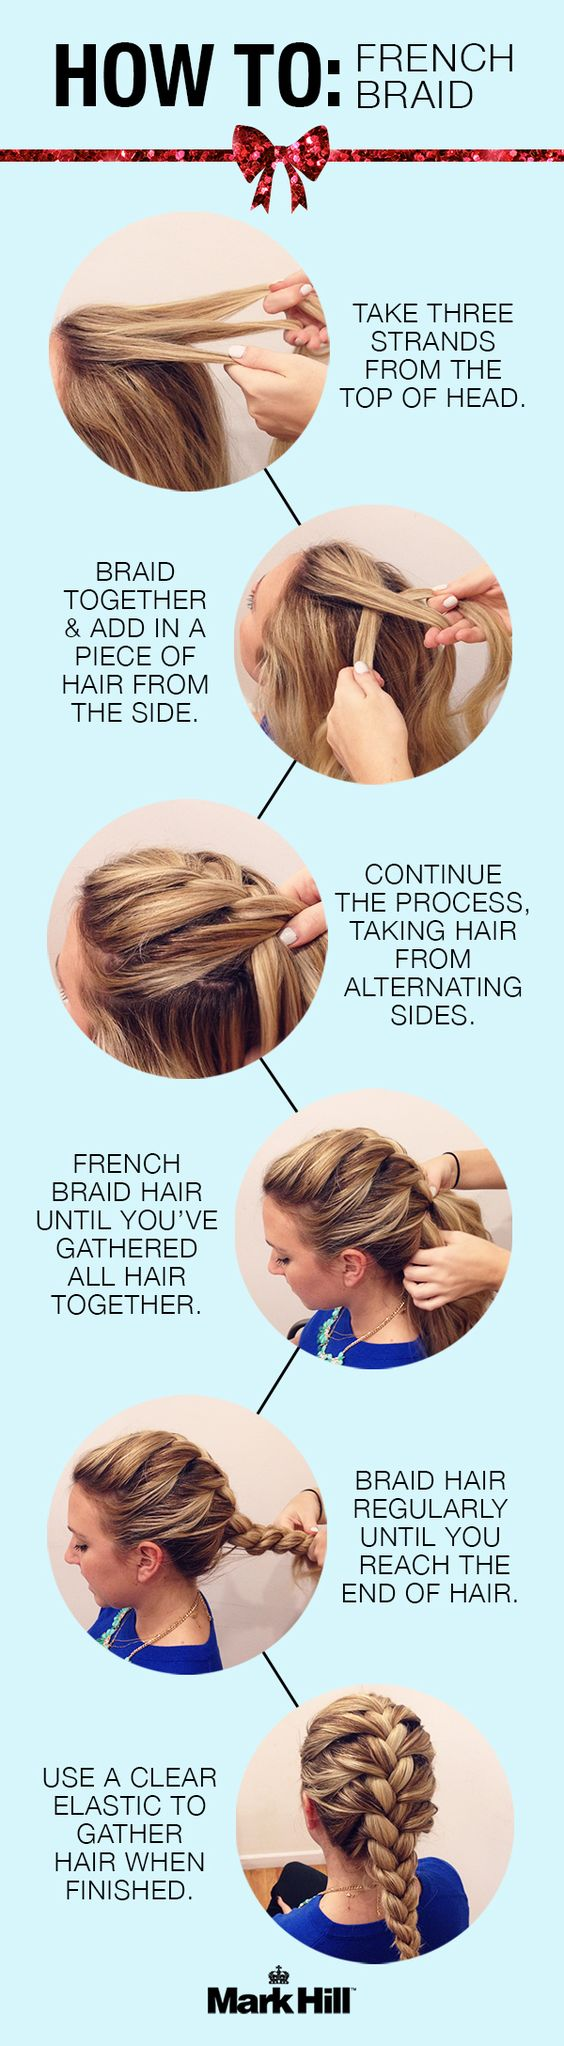 Get back to the basics with this easy French braid tutorial.